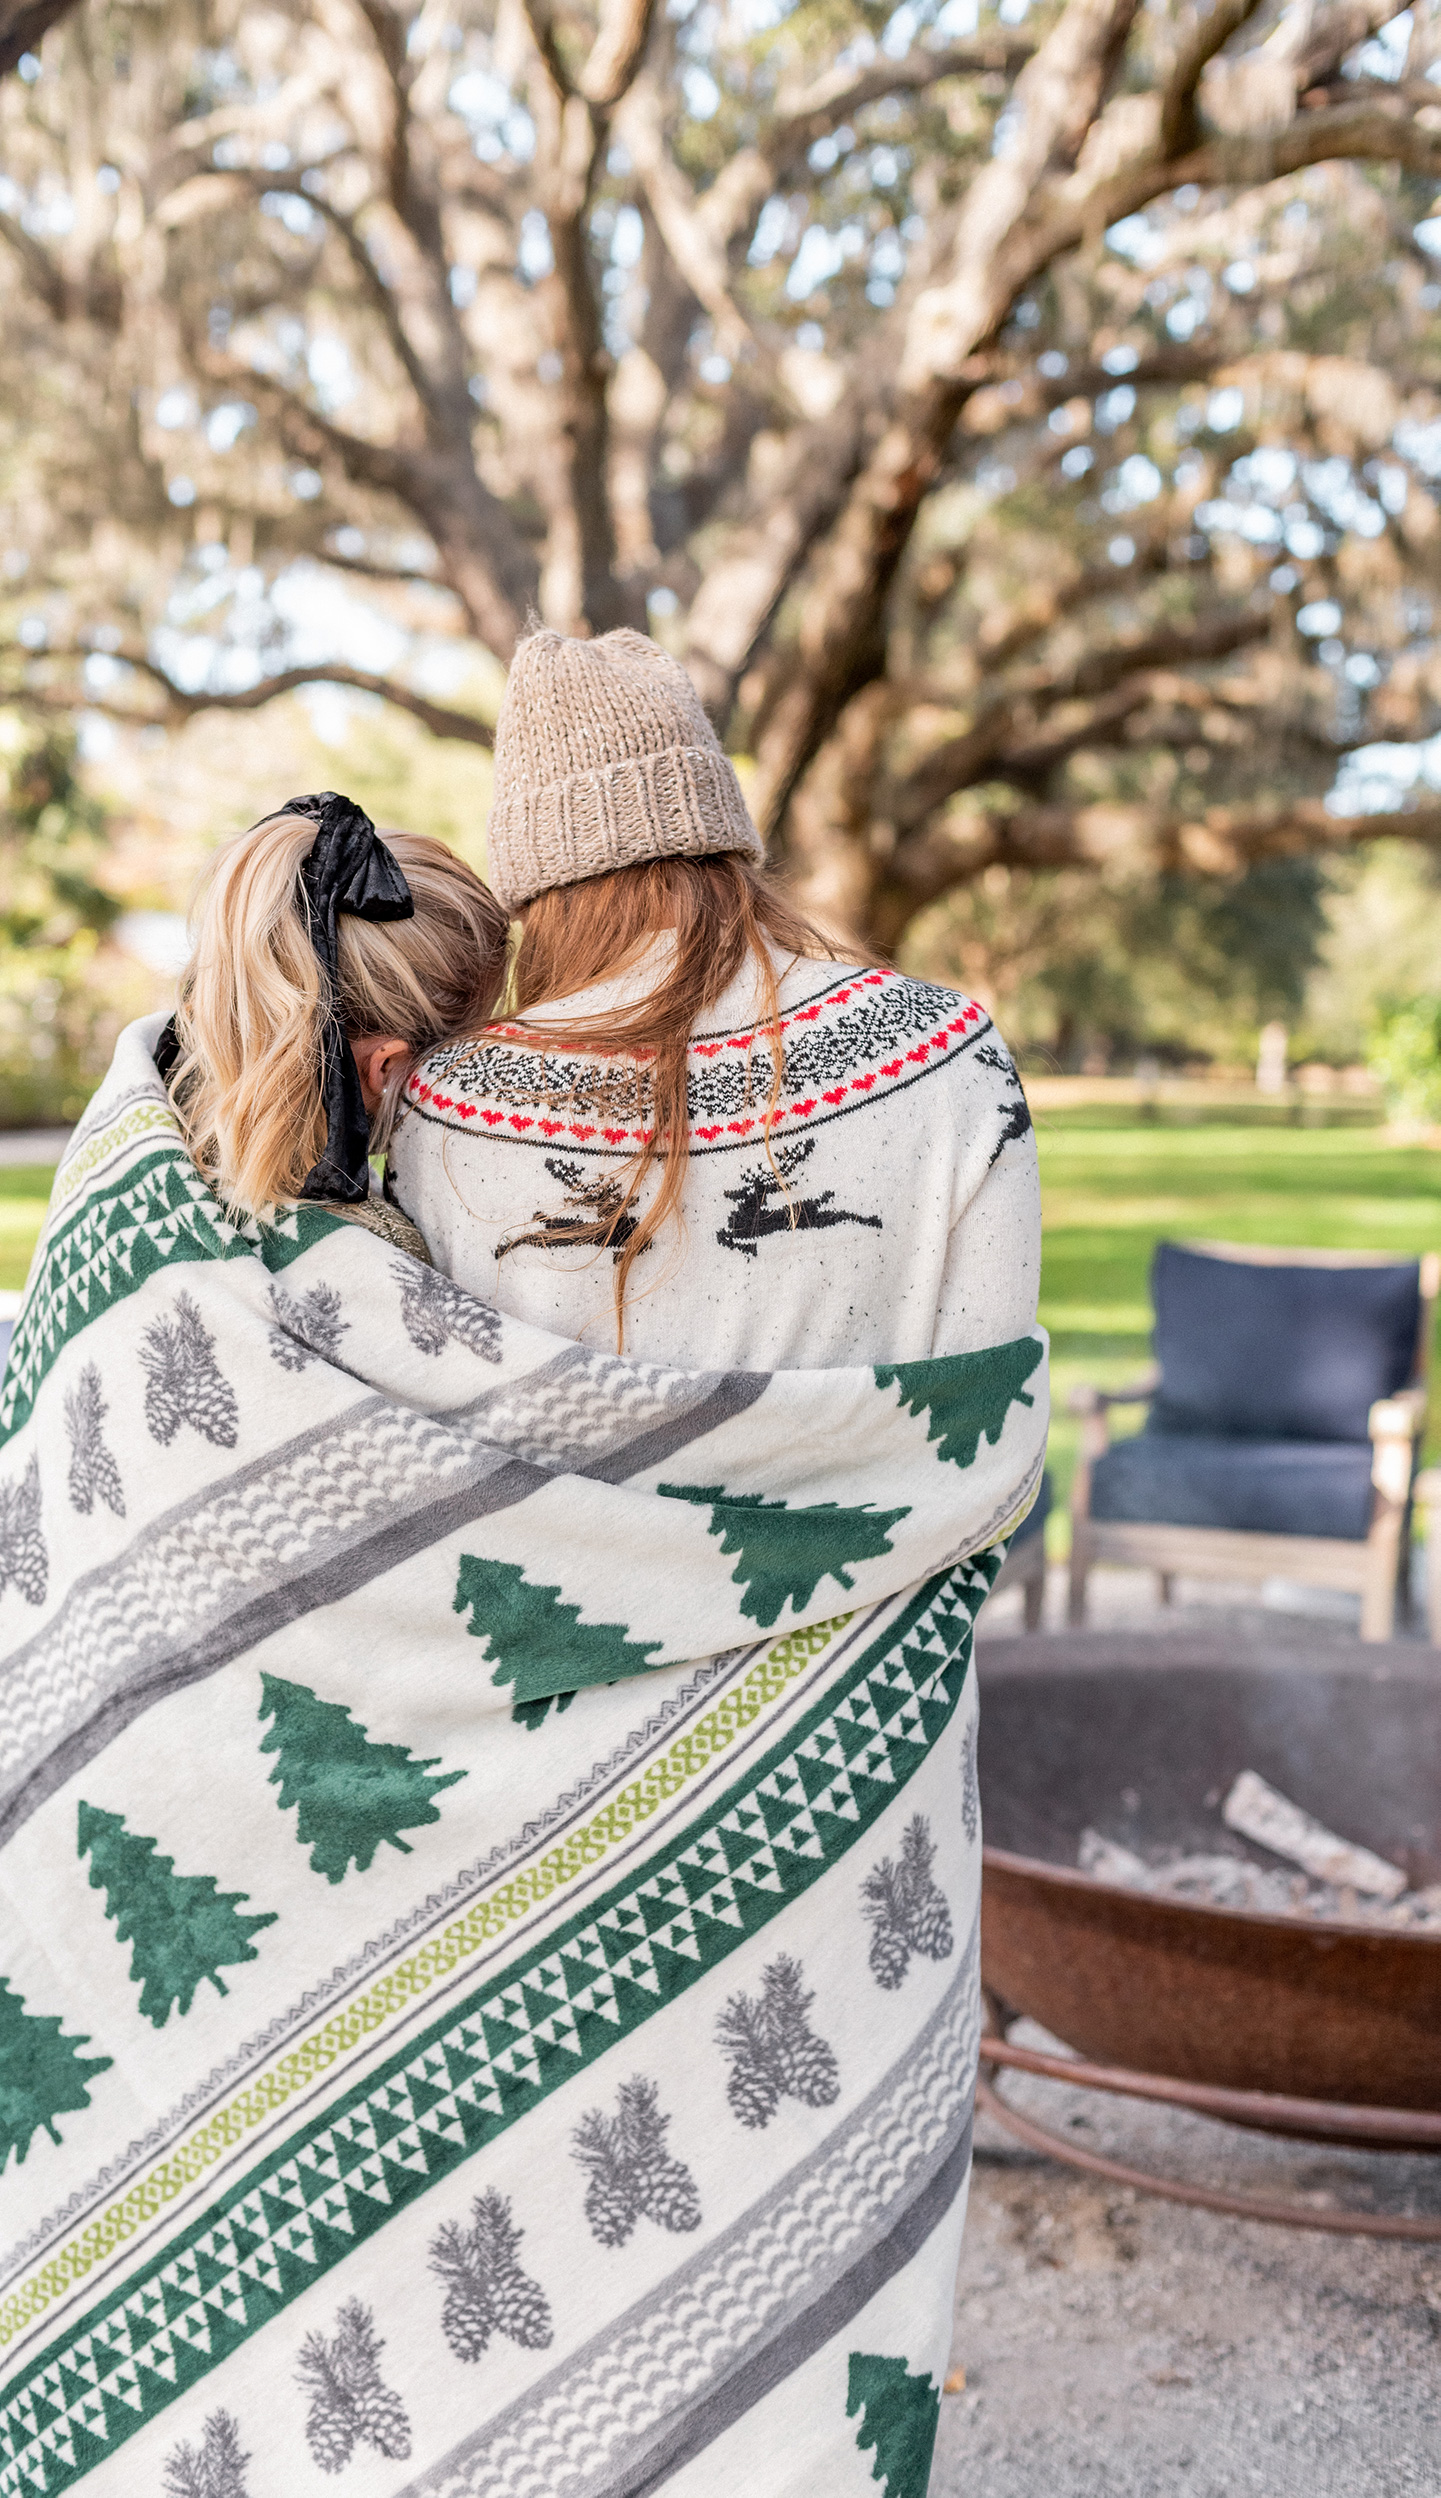 Bundled in a ChappyWrap Blanket by the Fire | Creative Conversation Starters